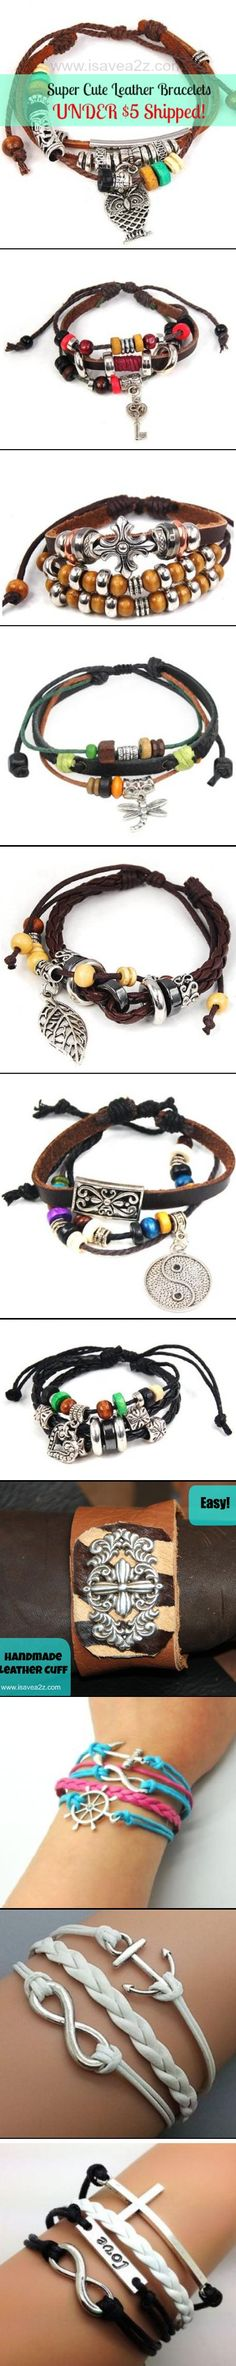 Very Trendy Bracelets that would be an EASY DIY project!!!